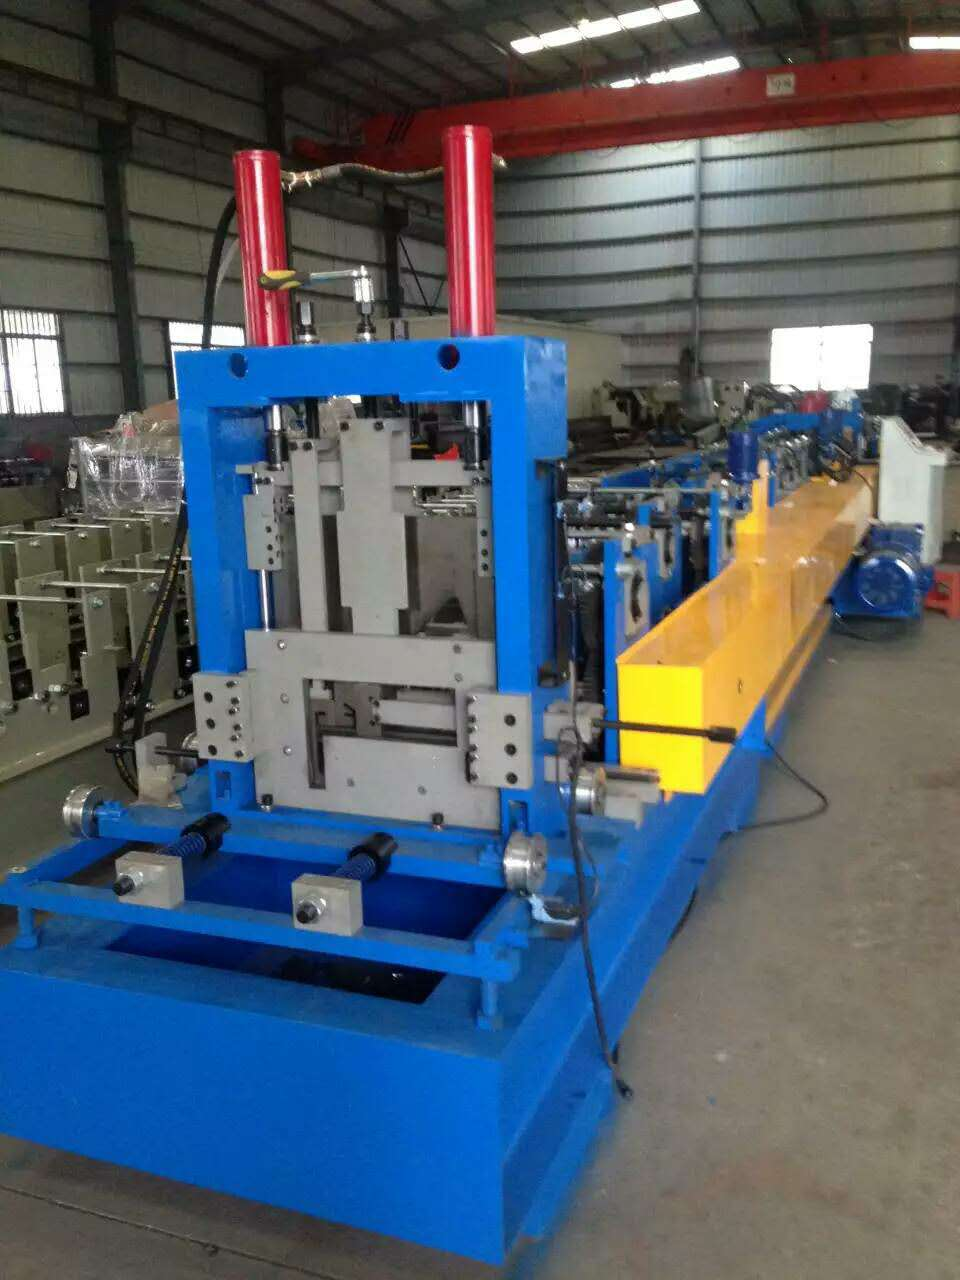 One of Hottest for Large Span Forming Machine - 1-3mm Steel metal purlin roll forming machine – Yingyee